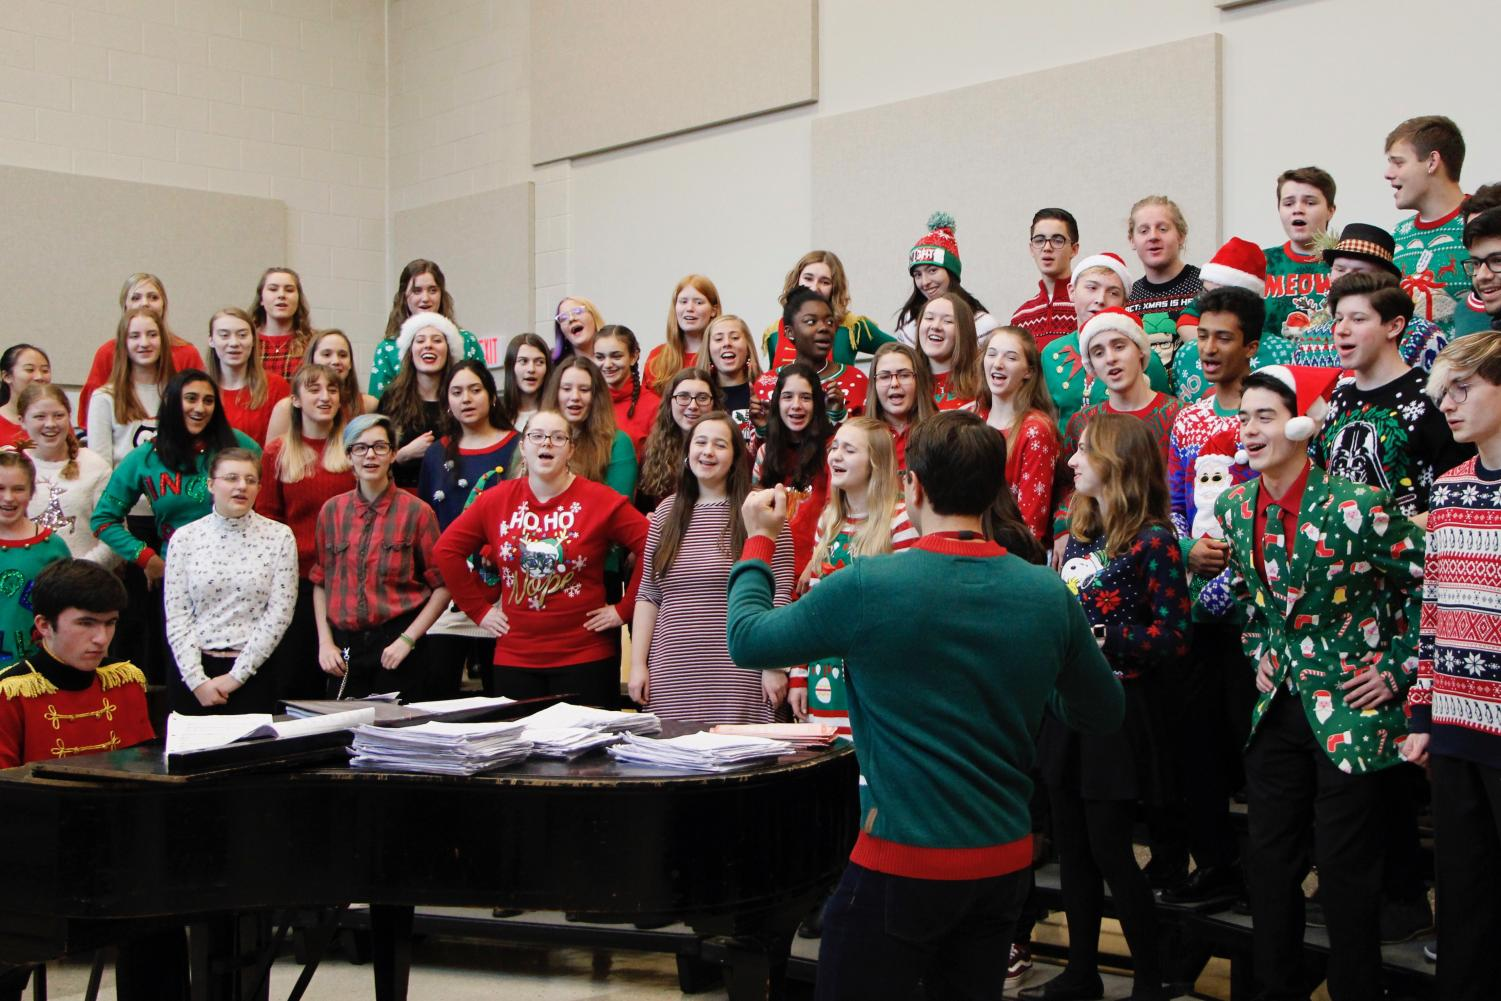 """State High Choirs rehearse Mariah Carey's """"All I Want For Christmas Is You"""" before going on stage to perform. This song featured senior Caylee Thompson, and was popular among both the audience and students.  """"Hearing Caylee sing 'All I Want For Christmas Is You' was so good and she gave me chills,"""" junior Anna Farris said."""